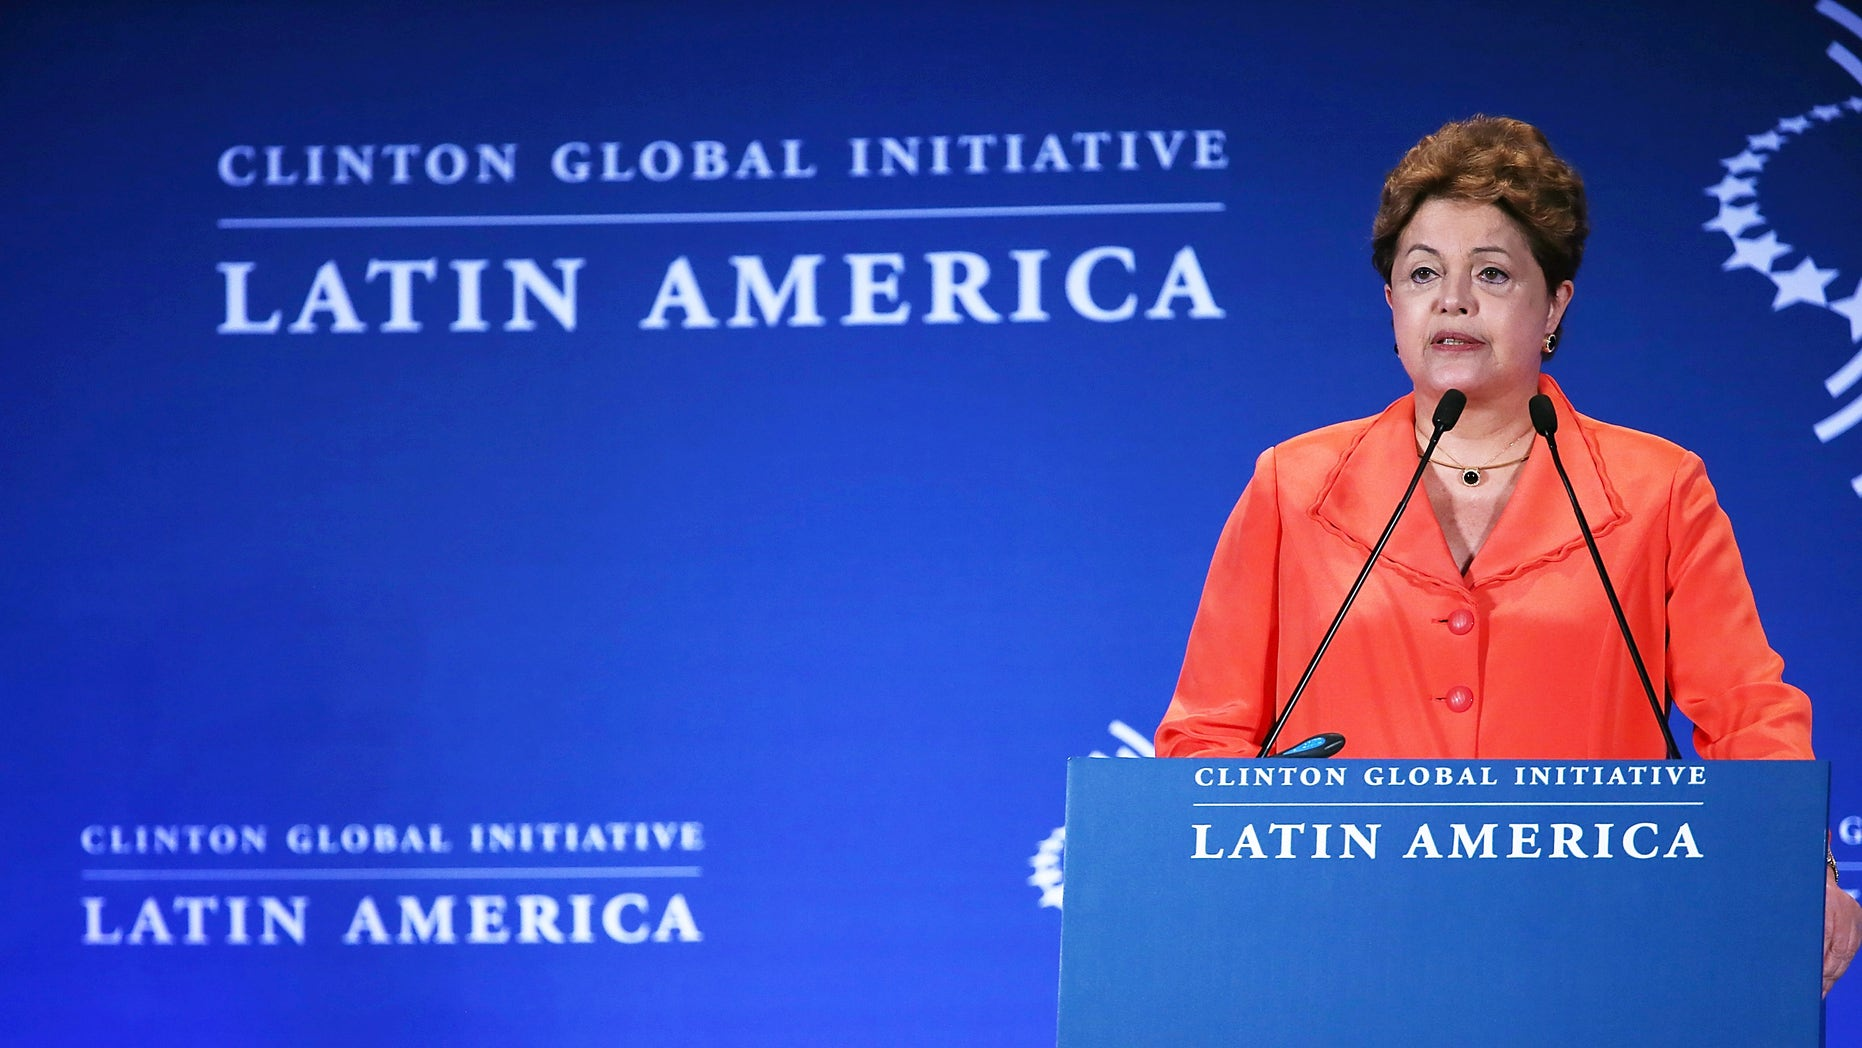 Rousseff at the Clinton Global Initiative Latin America meeting on December 9, 2013 in Rio de Janeiro, Brazil.